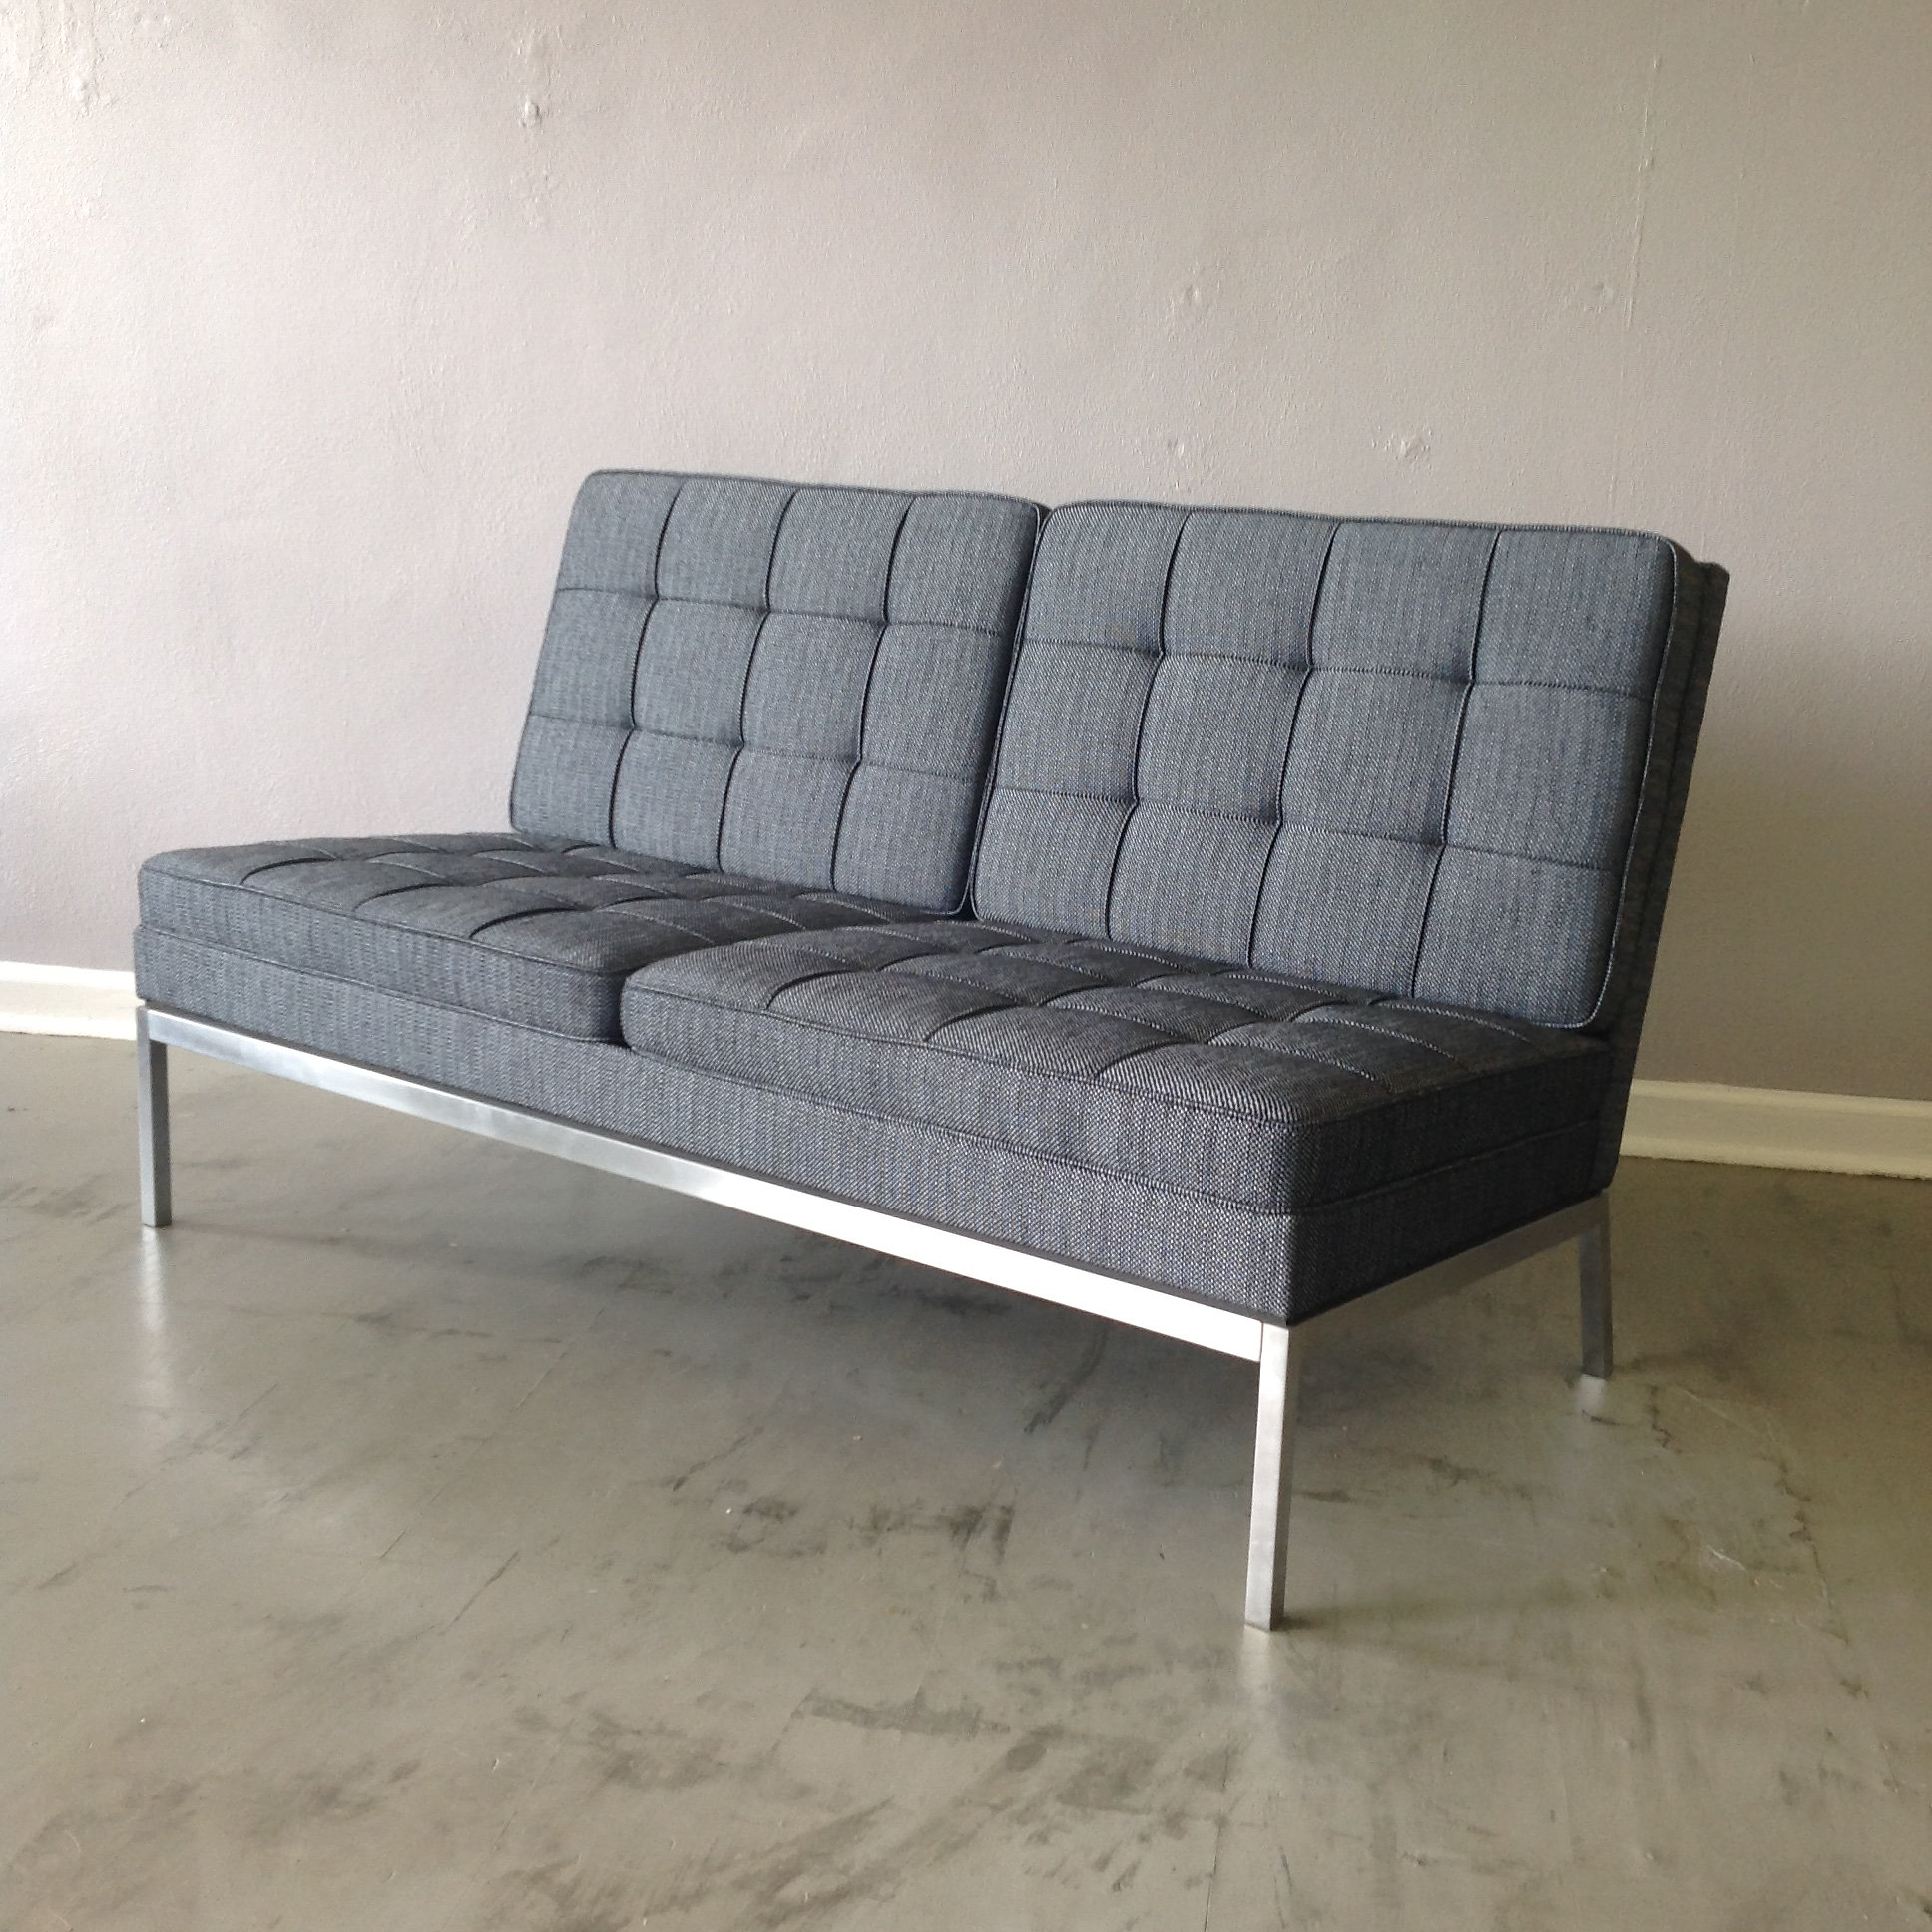 Florence Knoll Two Seat Armless Sofa  Mid Century Modern Furniture St Louis  Missouri Confluence. Modern Furniture St Louis Mo   penncoremedia com